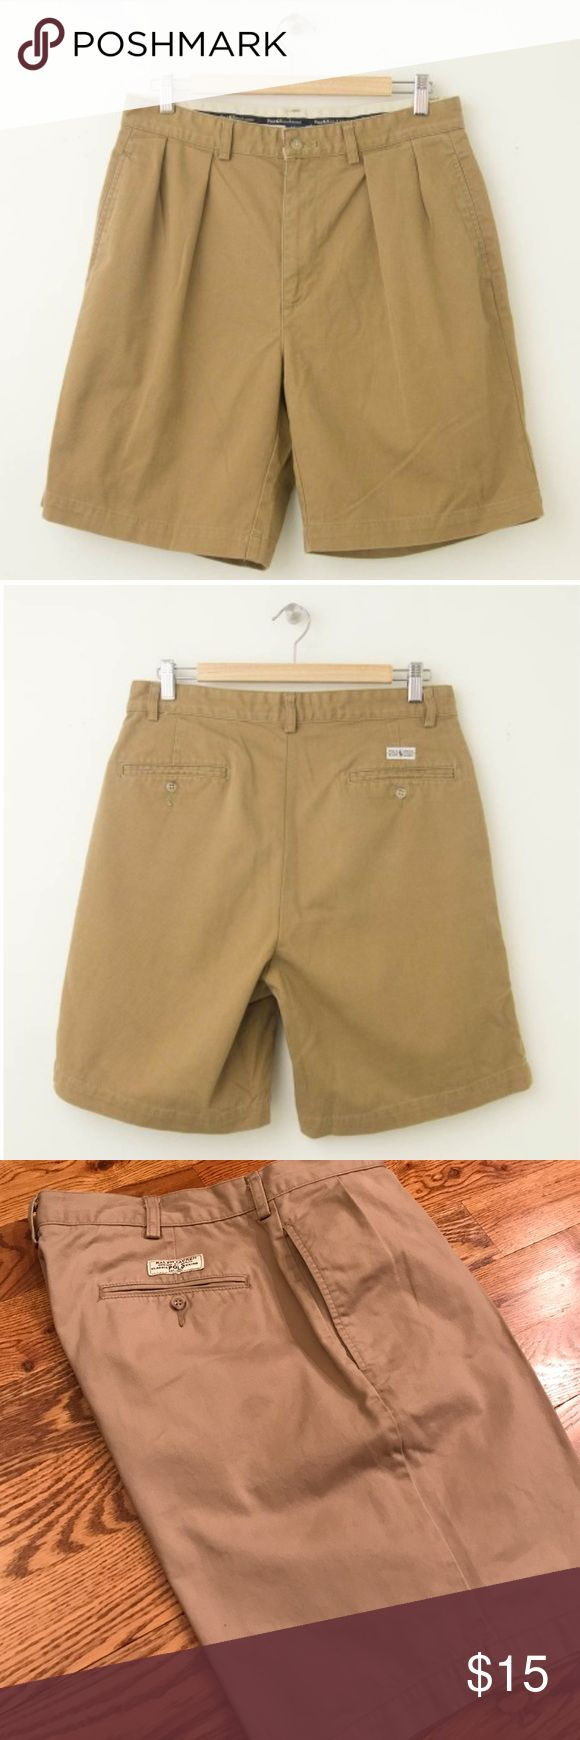 Polo by Ralph Lauren Men's Shorts Polo dress khaki shorts. In great condition, size 36. Discount available when purchased in a bundle! Polo by Ralph Lauren Shorts Flat Front